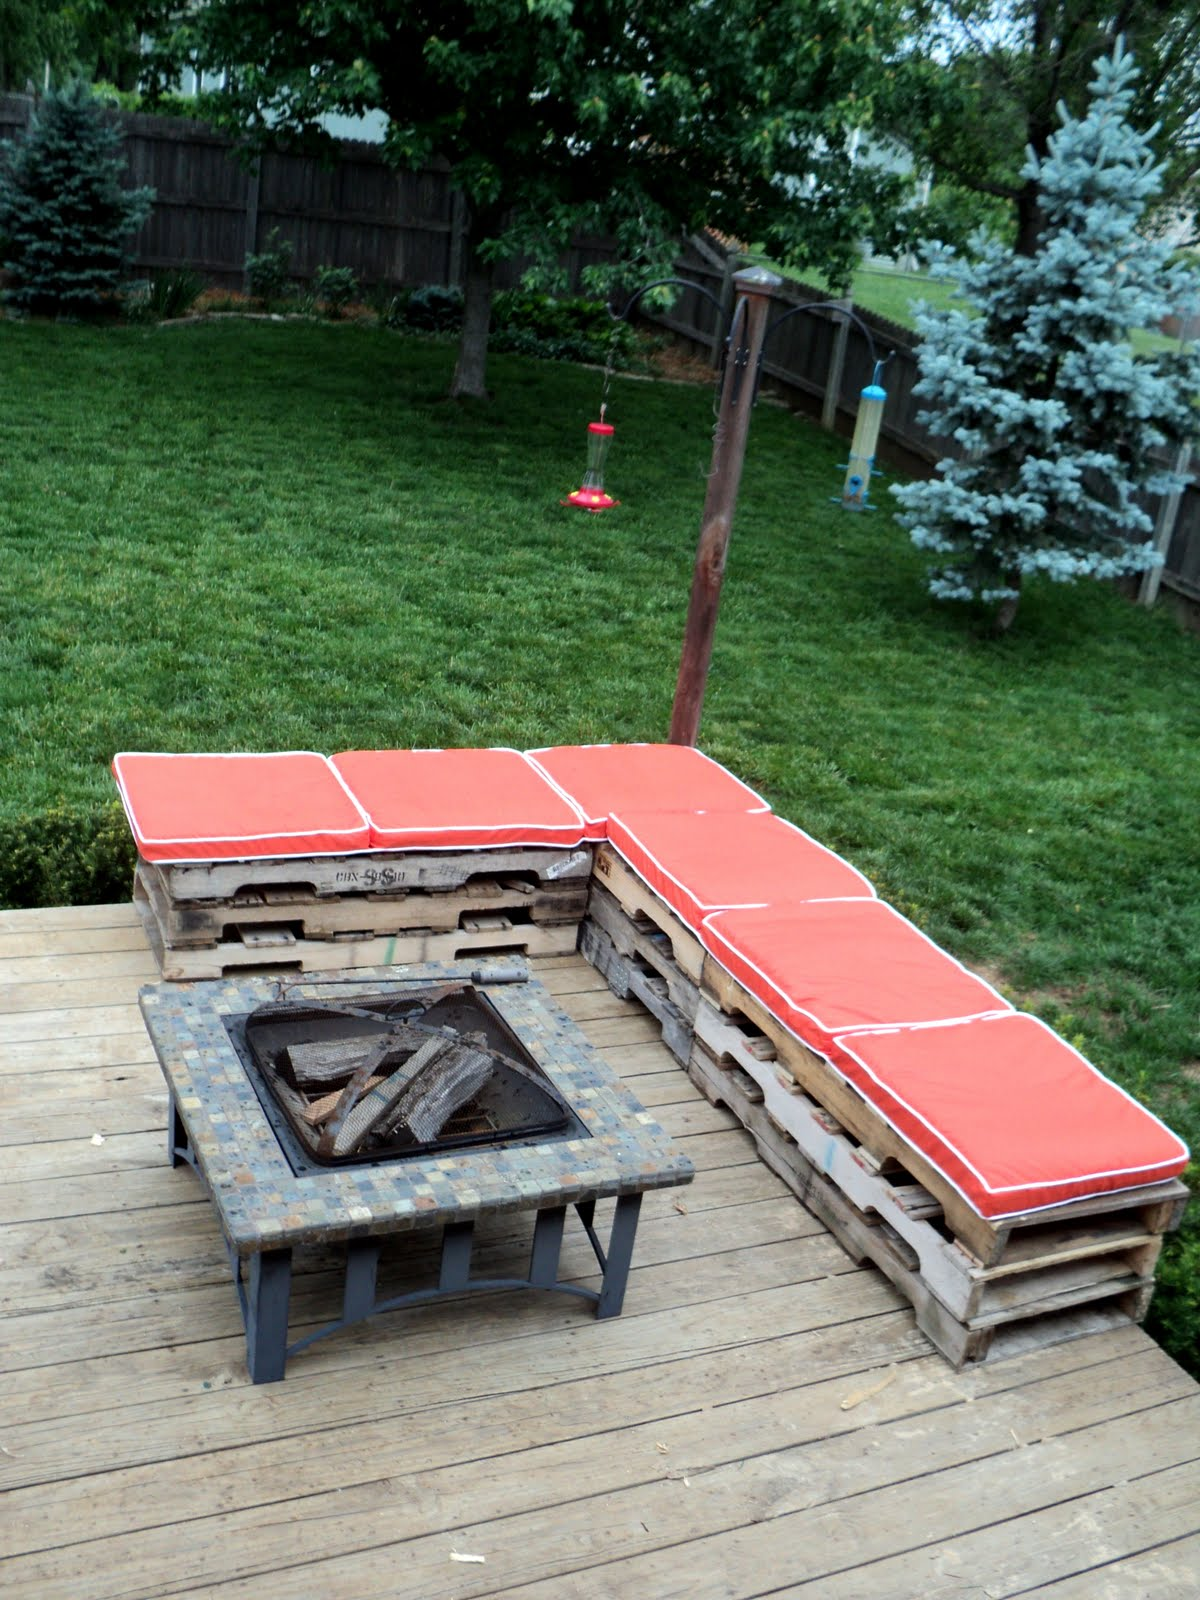 15 Of The Best Backyard DIY Projects | The Craftiest Couple on Diy Back Patio Ideas id=48854